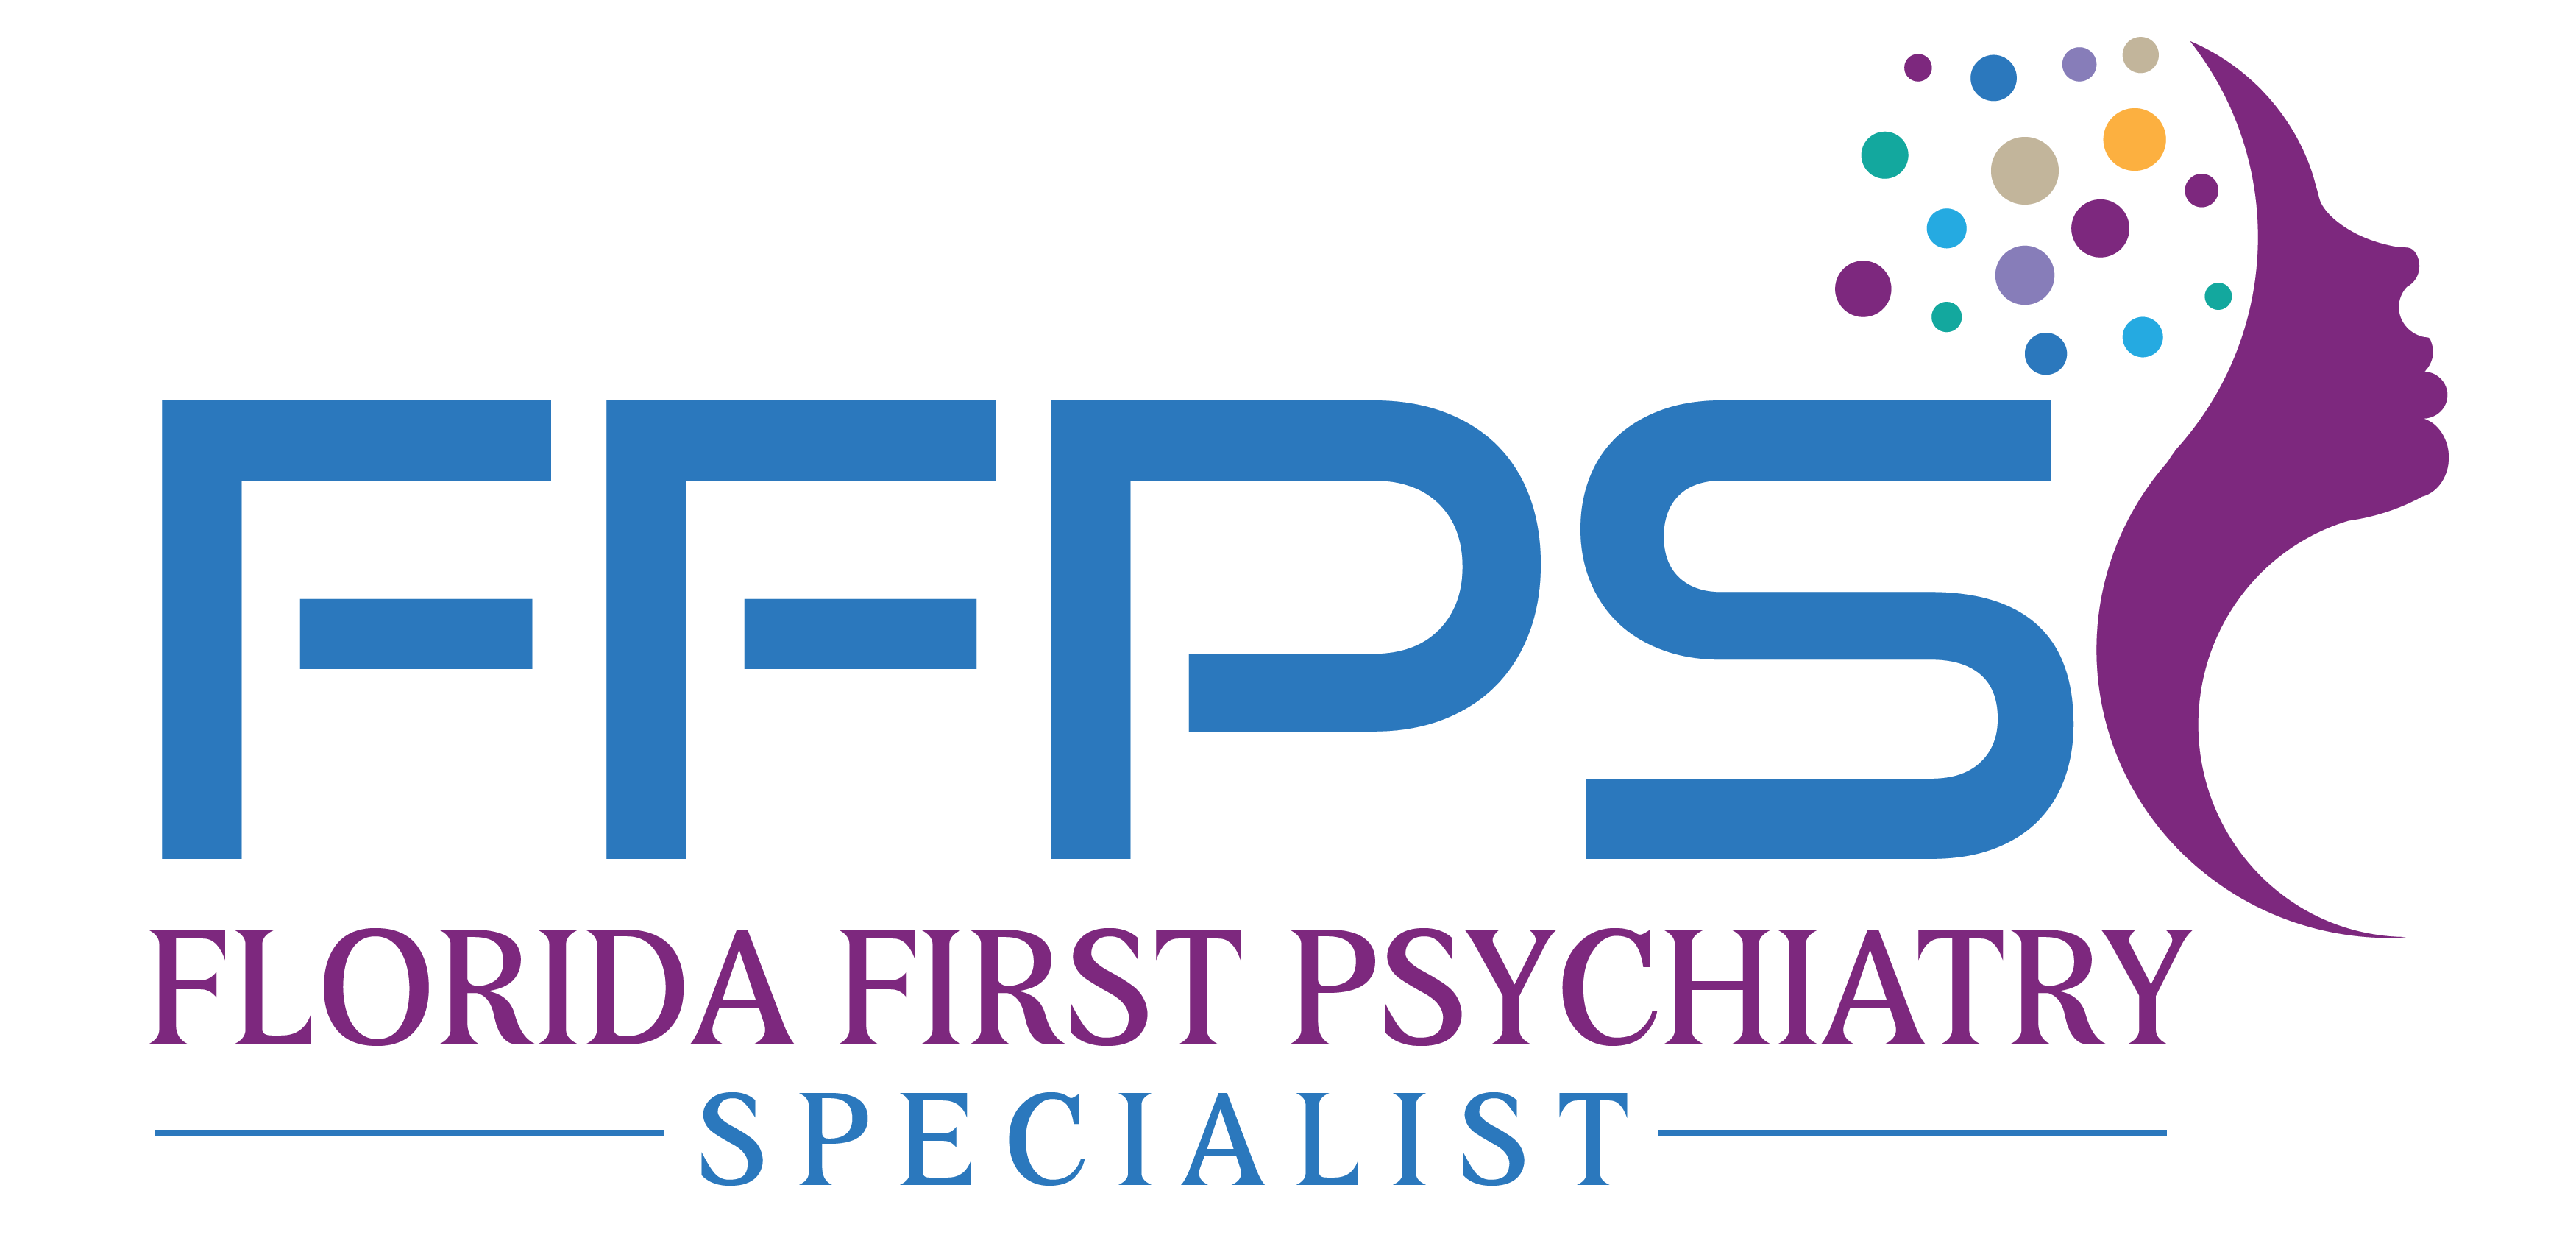 Florida First Psychiatry Specialist